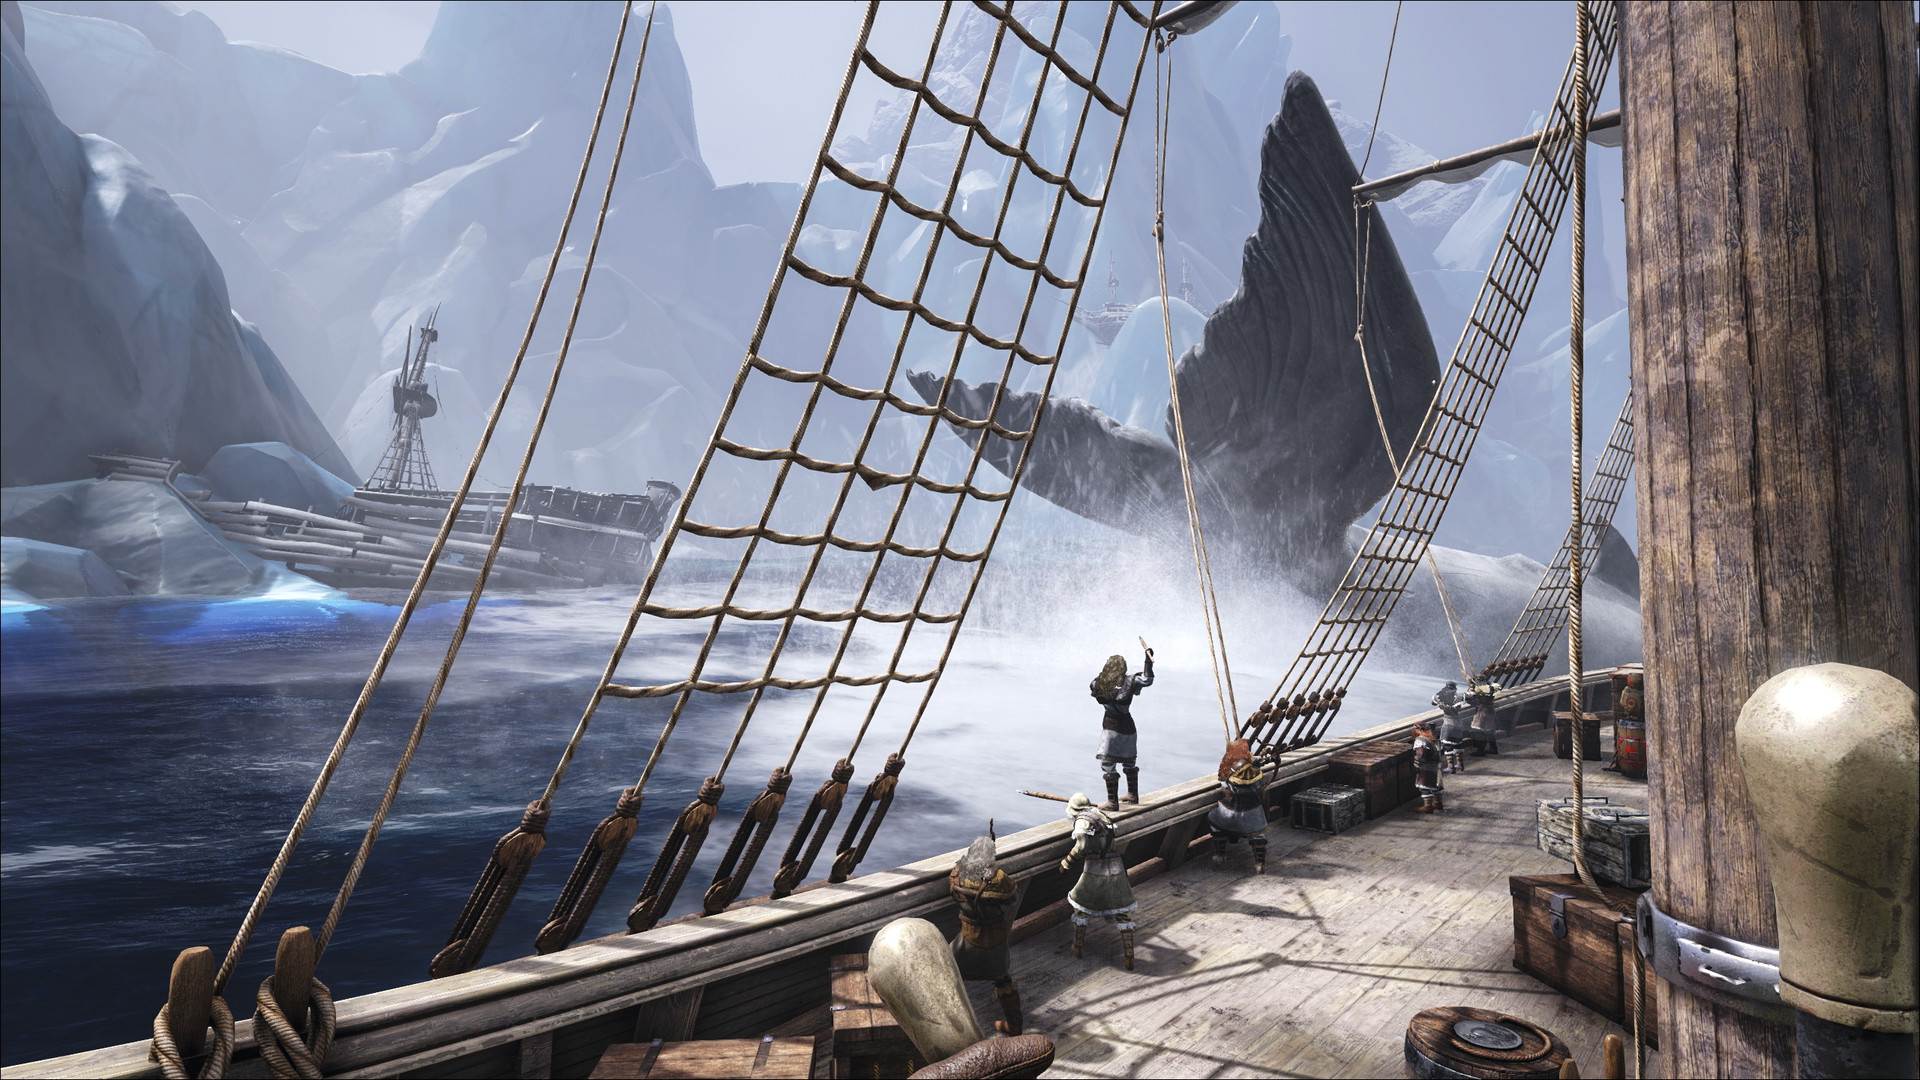 Pirate MMO Atlas gets extended gameplay trailer